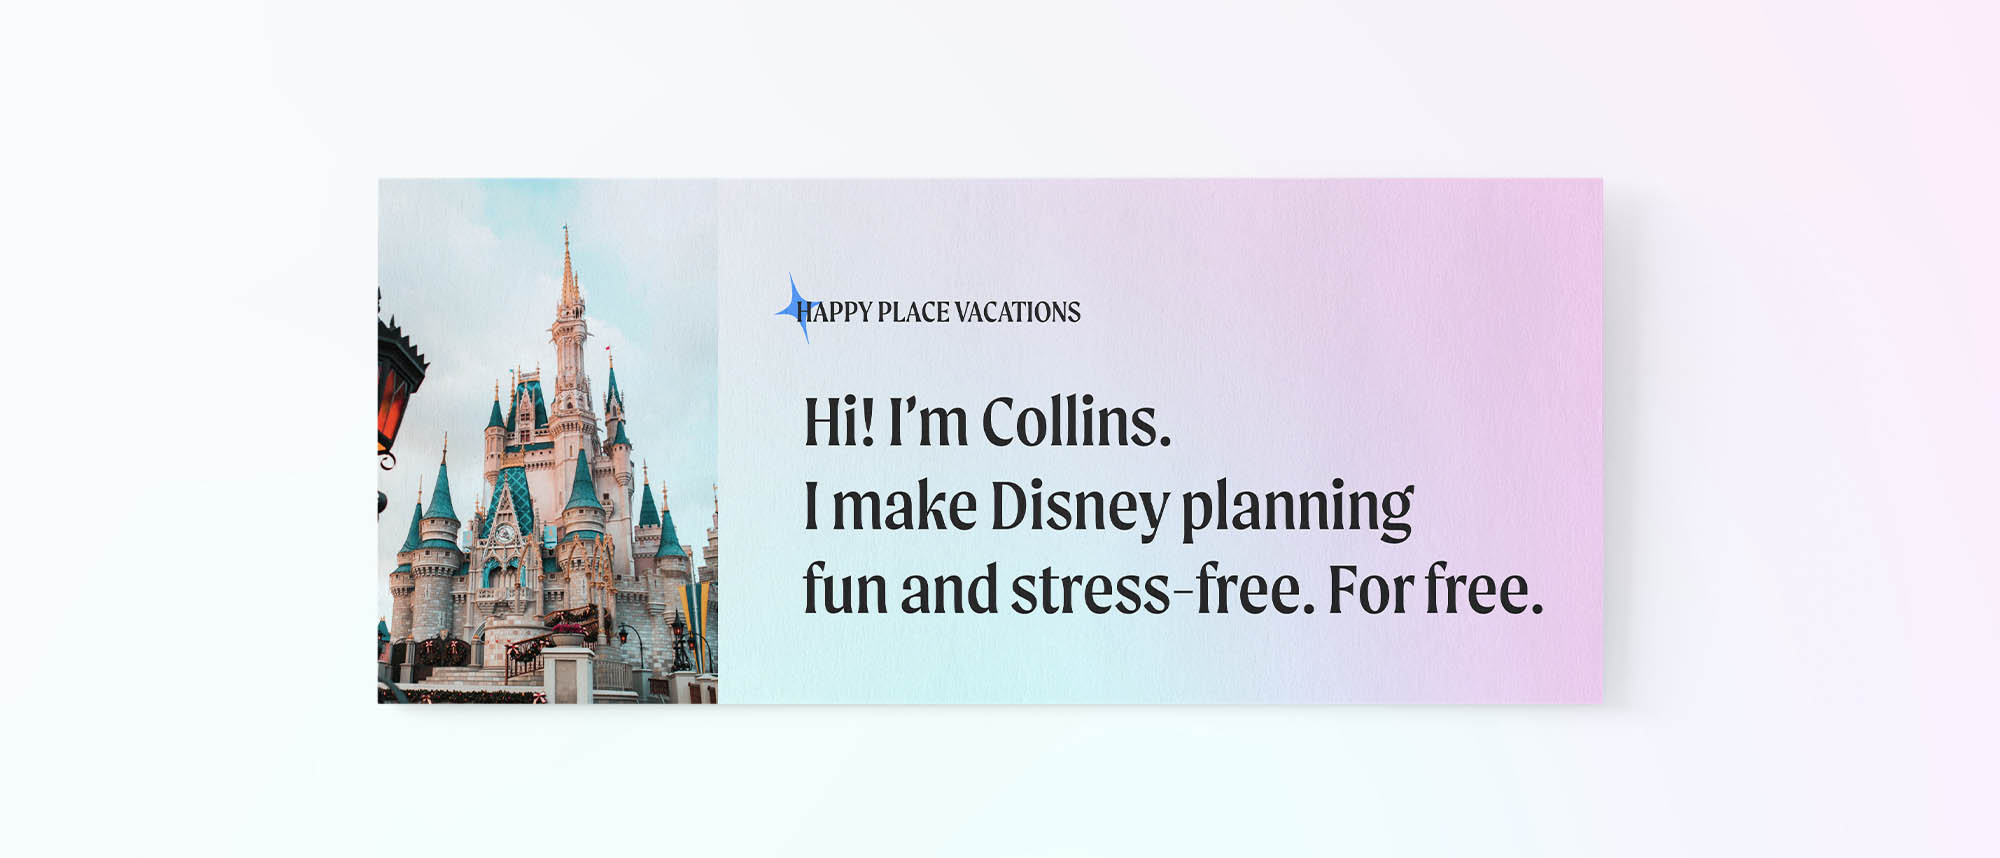 Flyer branding design for Happy Place Vacations